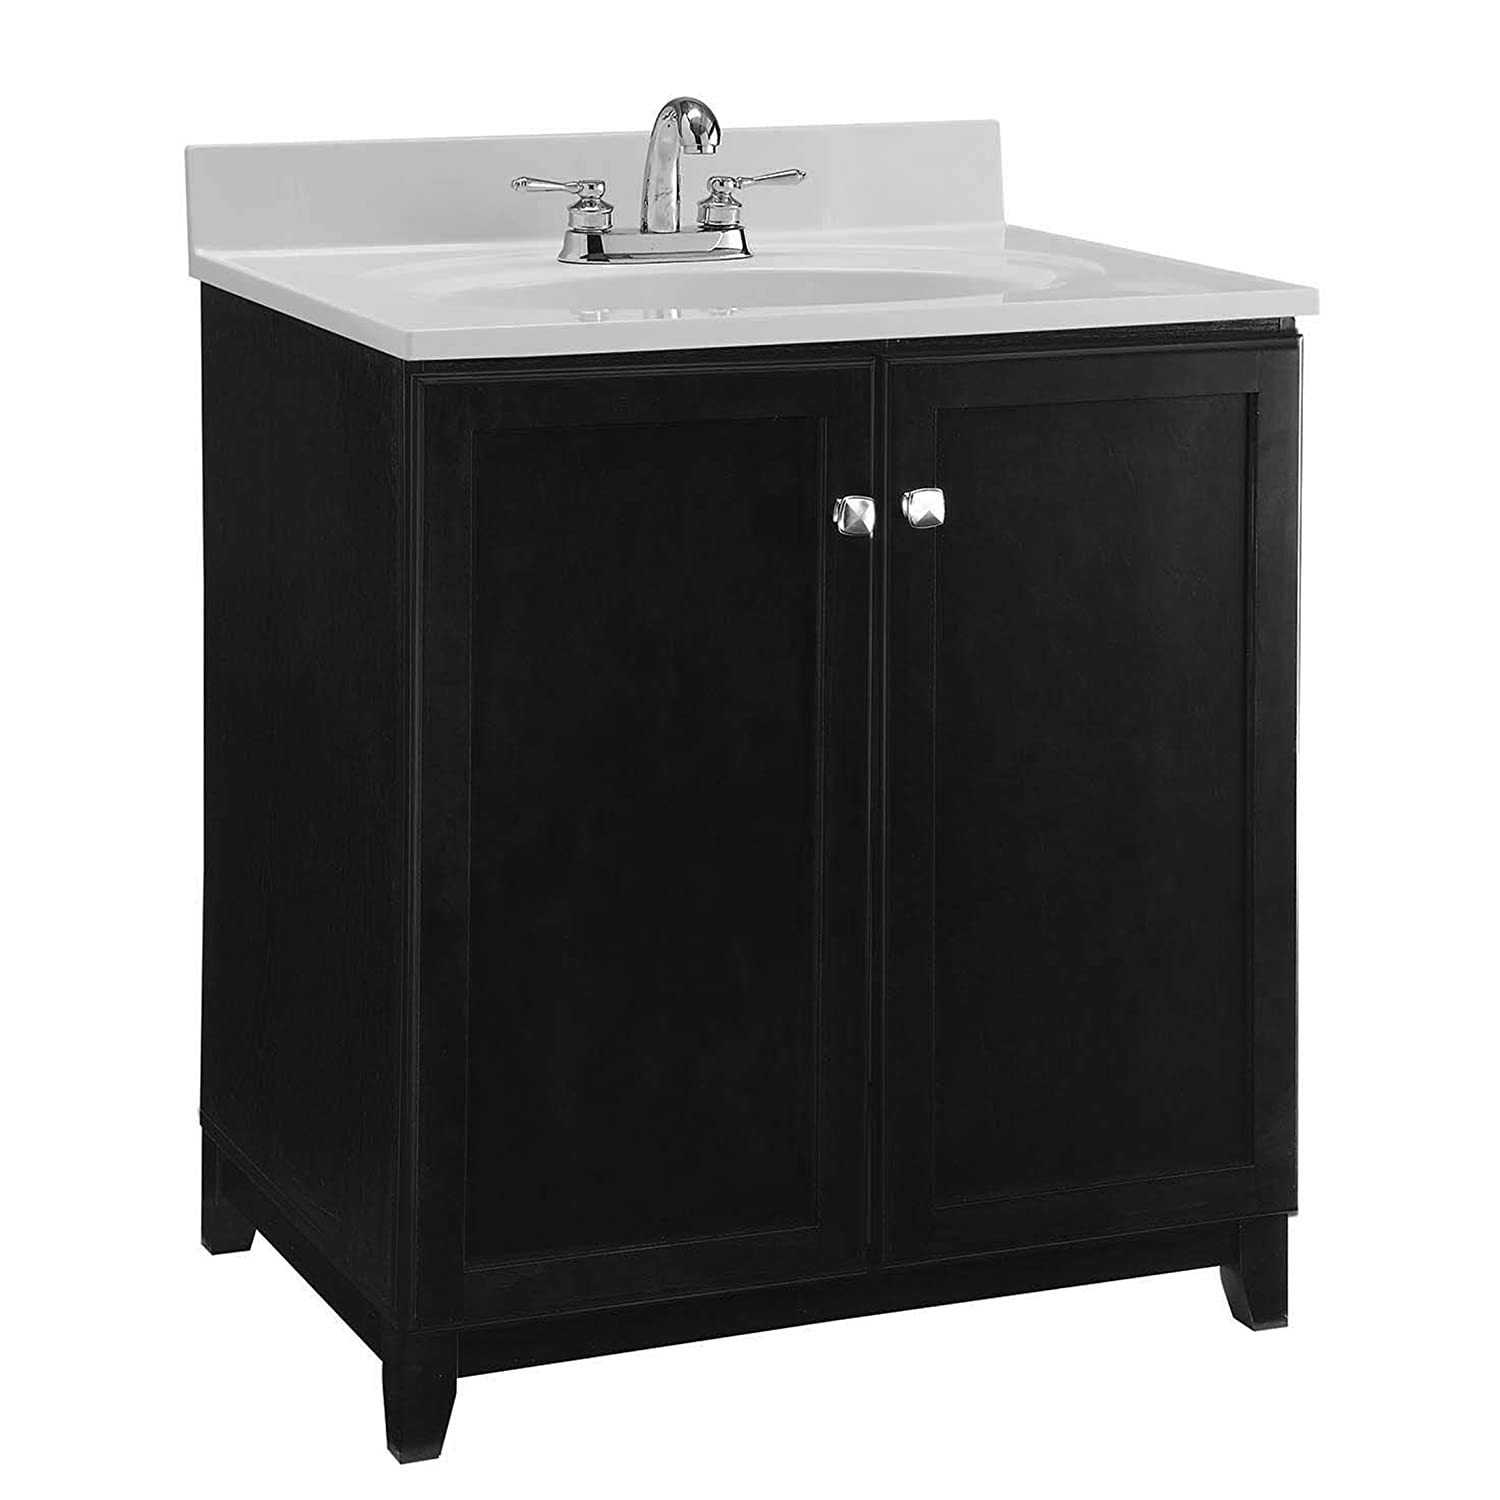 Design House 547000 Shorewood Furniture-Style Vanity Cabinet with 2-Doors, 30-inches by 21-inches, Espresso